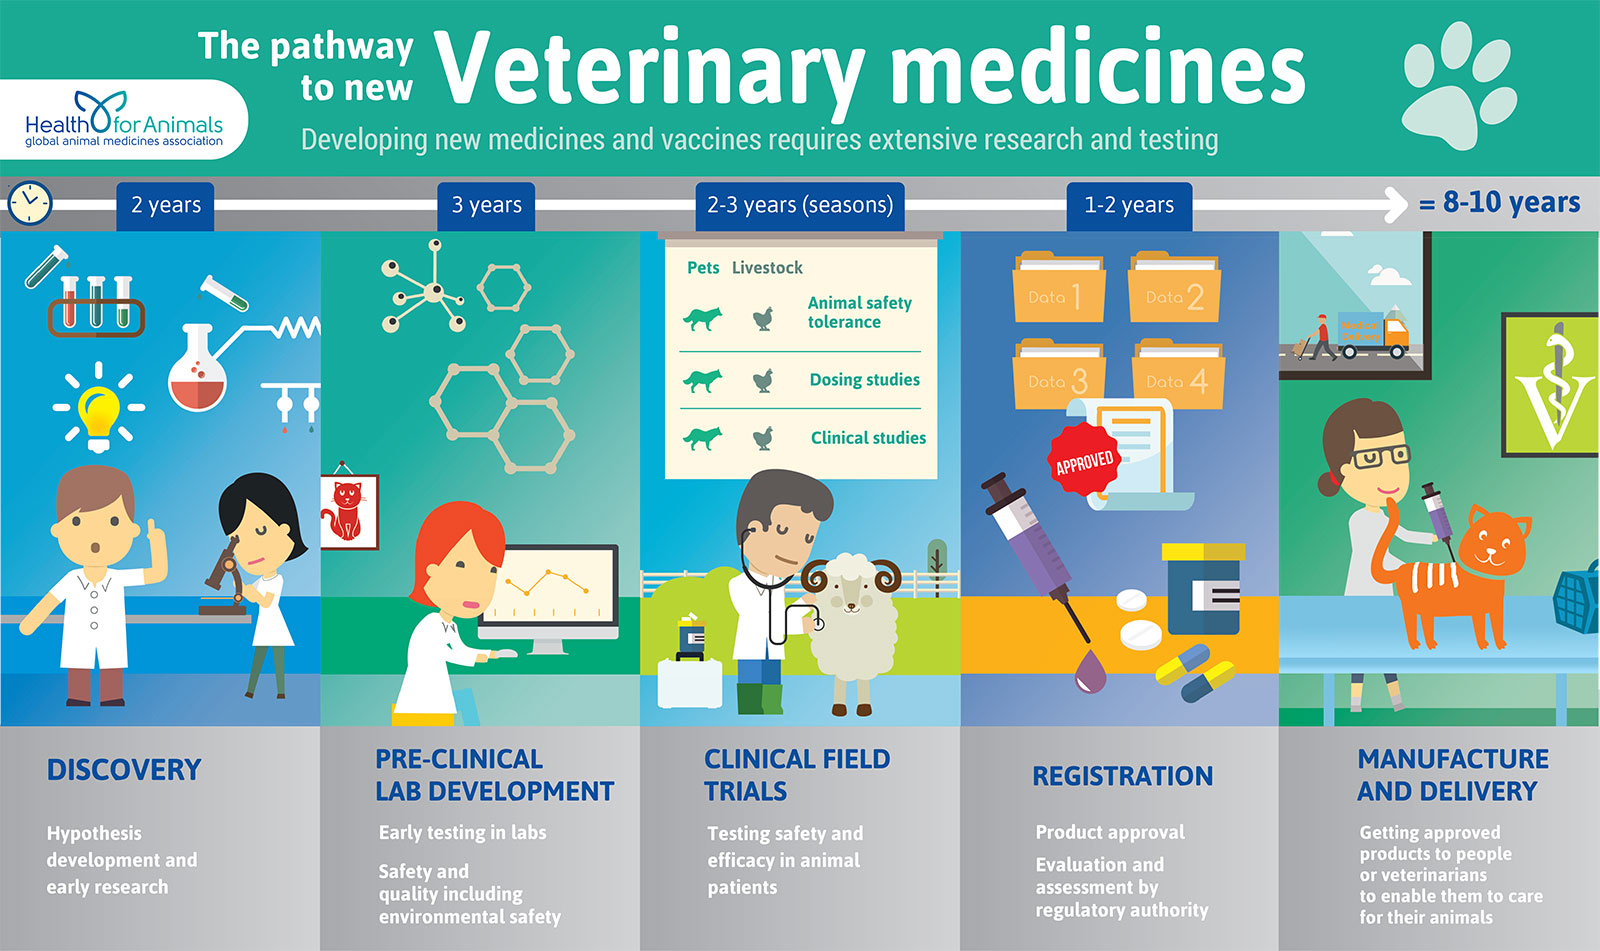 The pathway to new Veterinary medicines